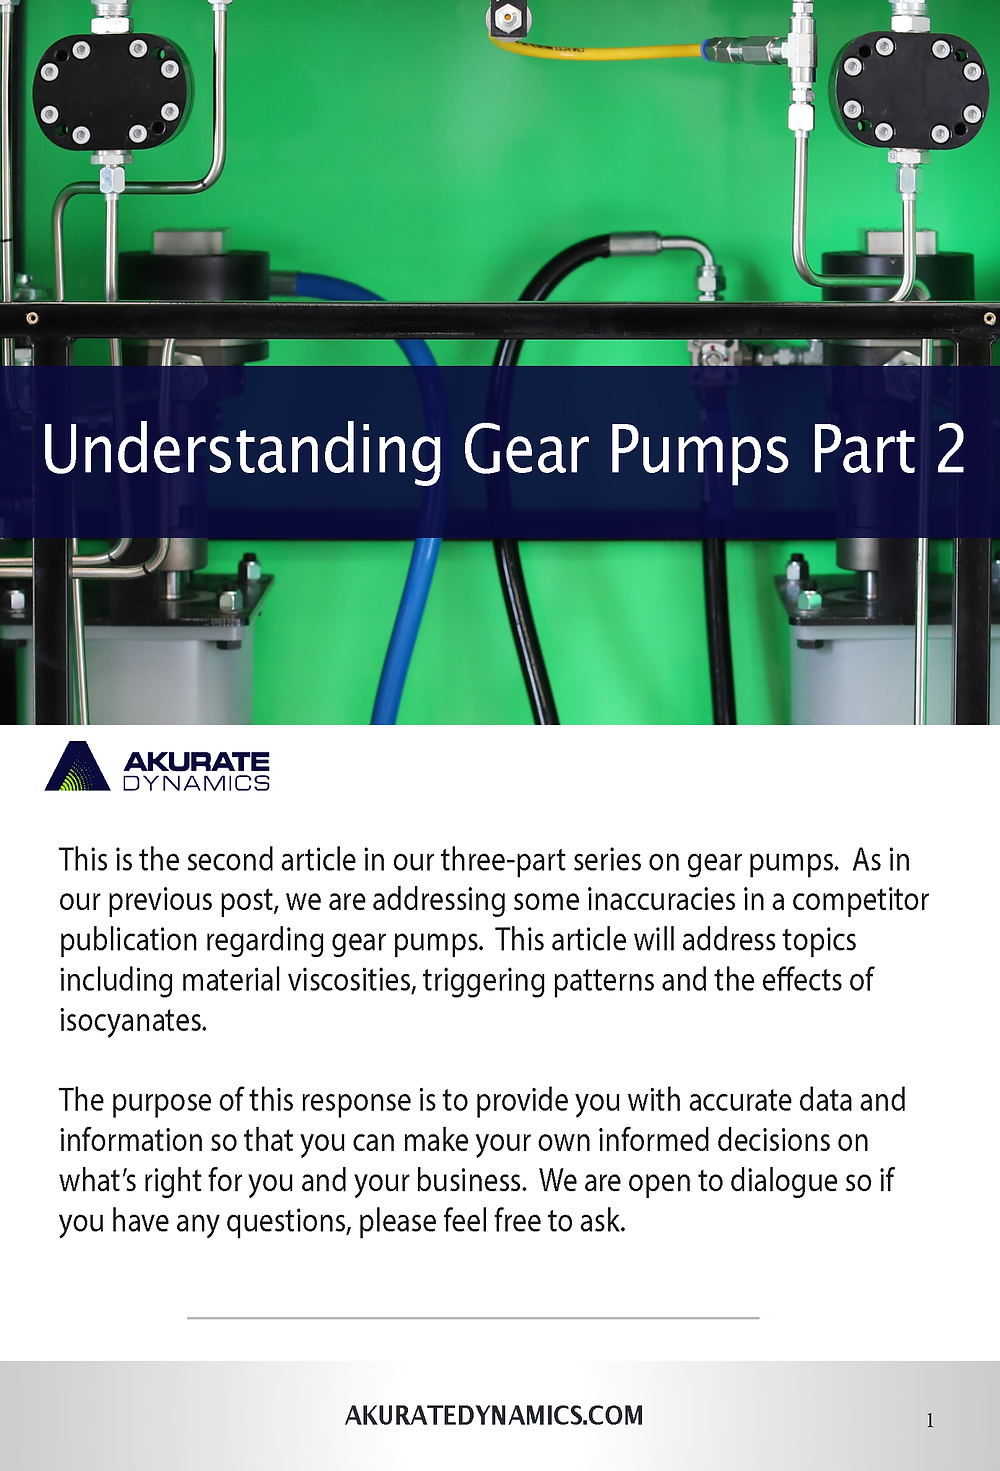 Akurate Dynamics Gear Pumps